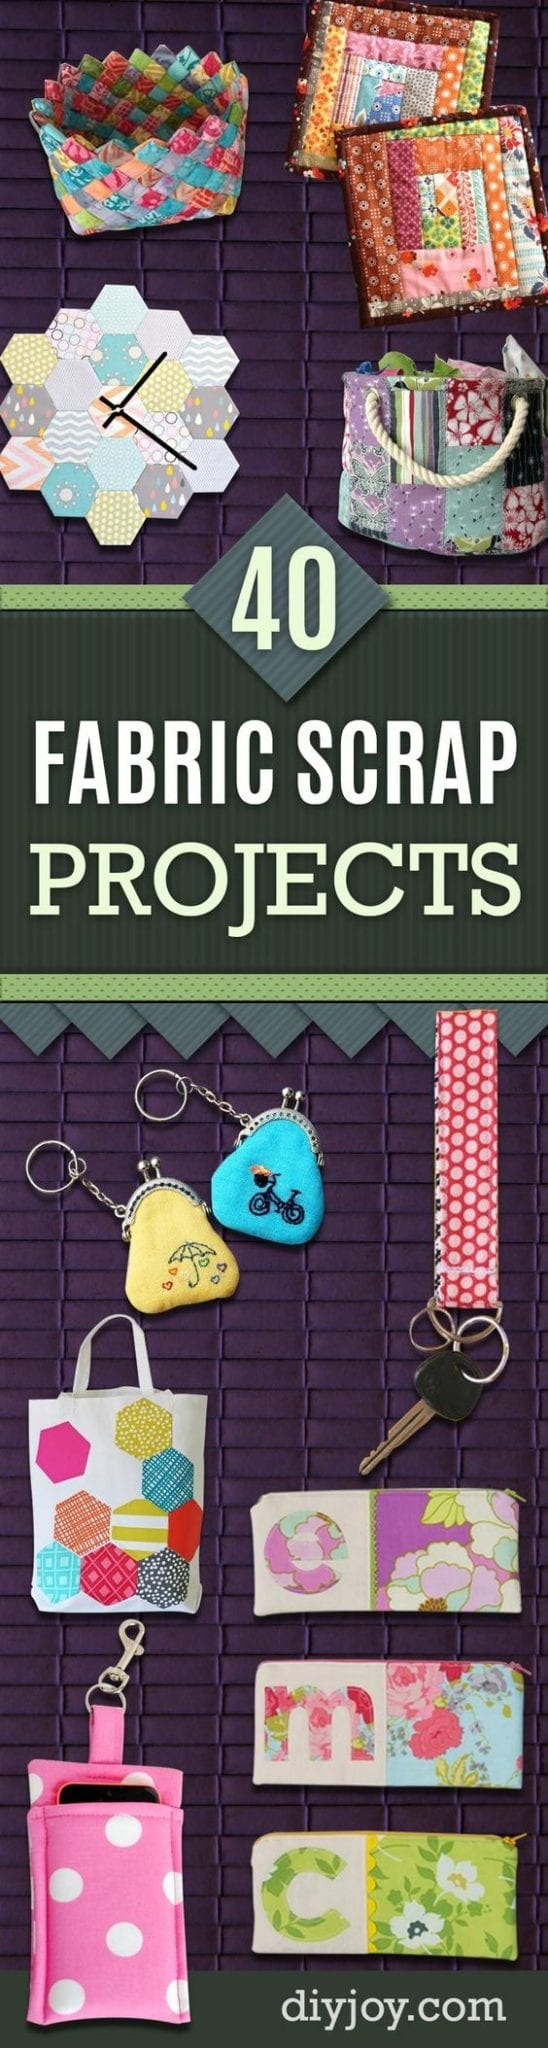 Leftover Fabric Scraps ideas